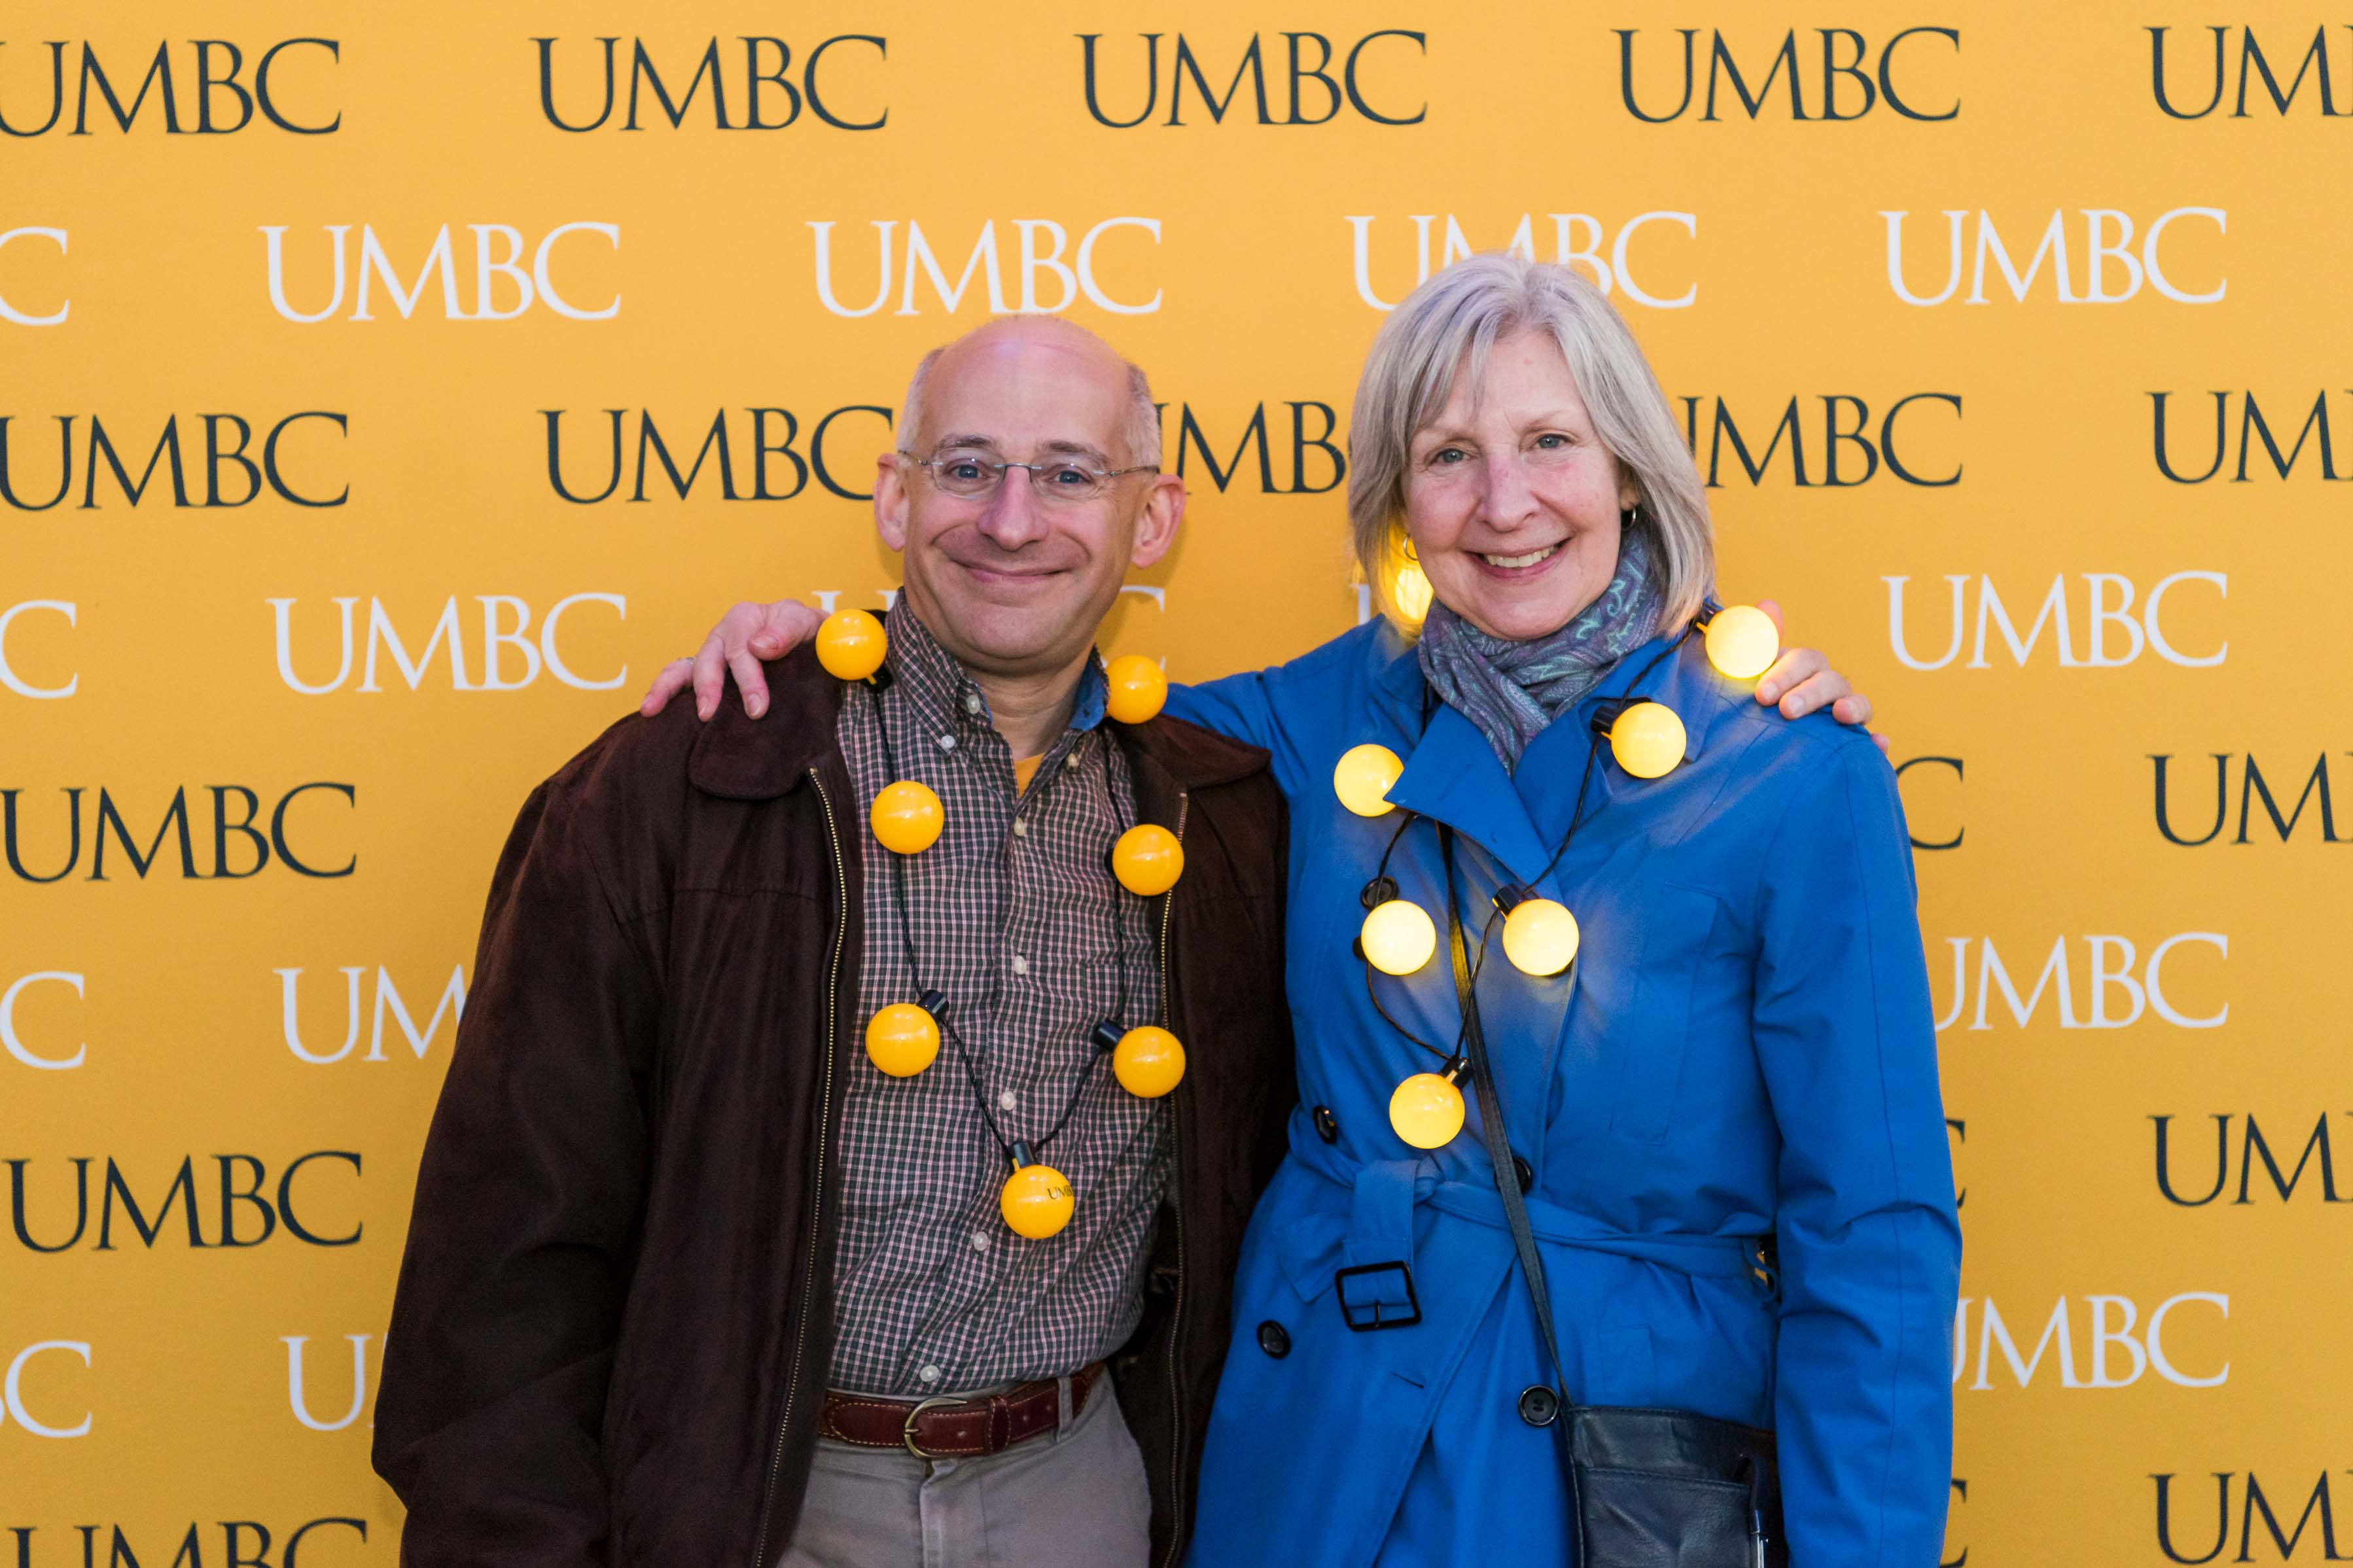 Couple poses in front of UMBC wall at alumni reception